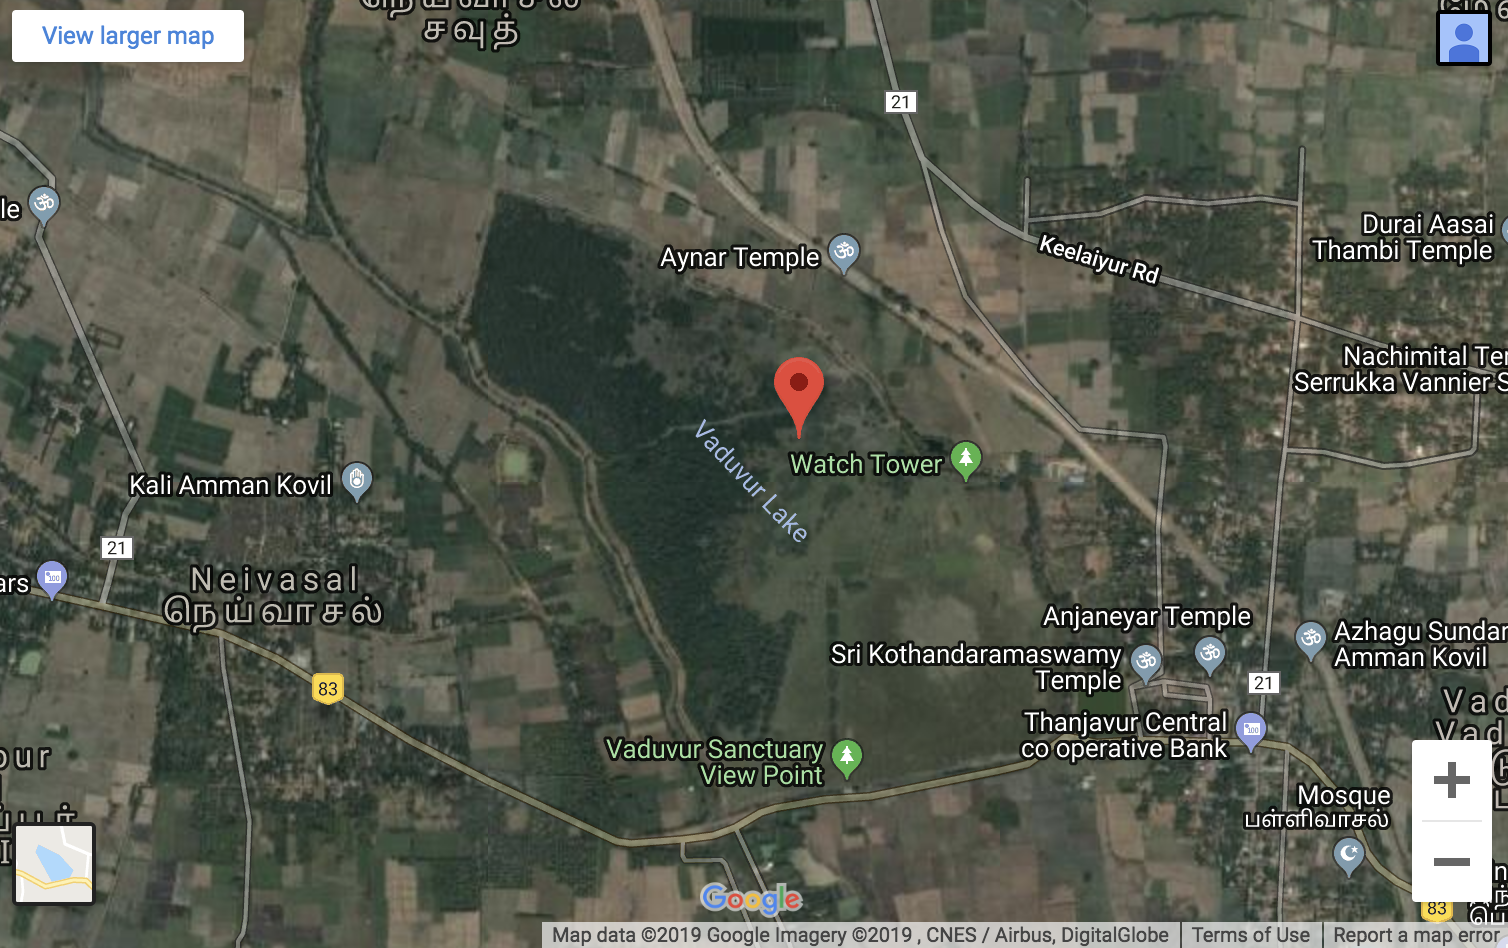 A Google Maps view of Vadavoor Lake.